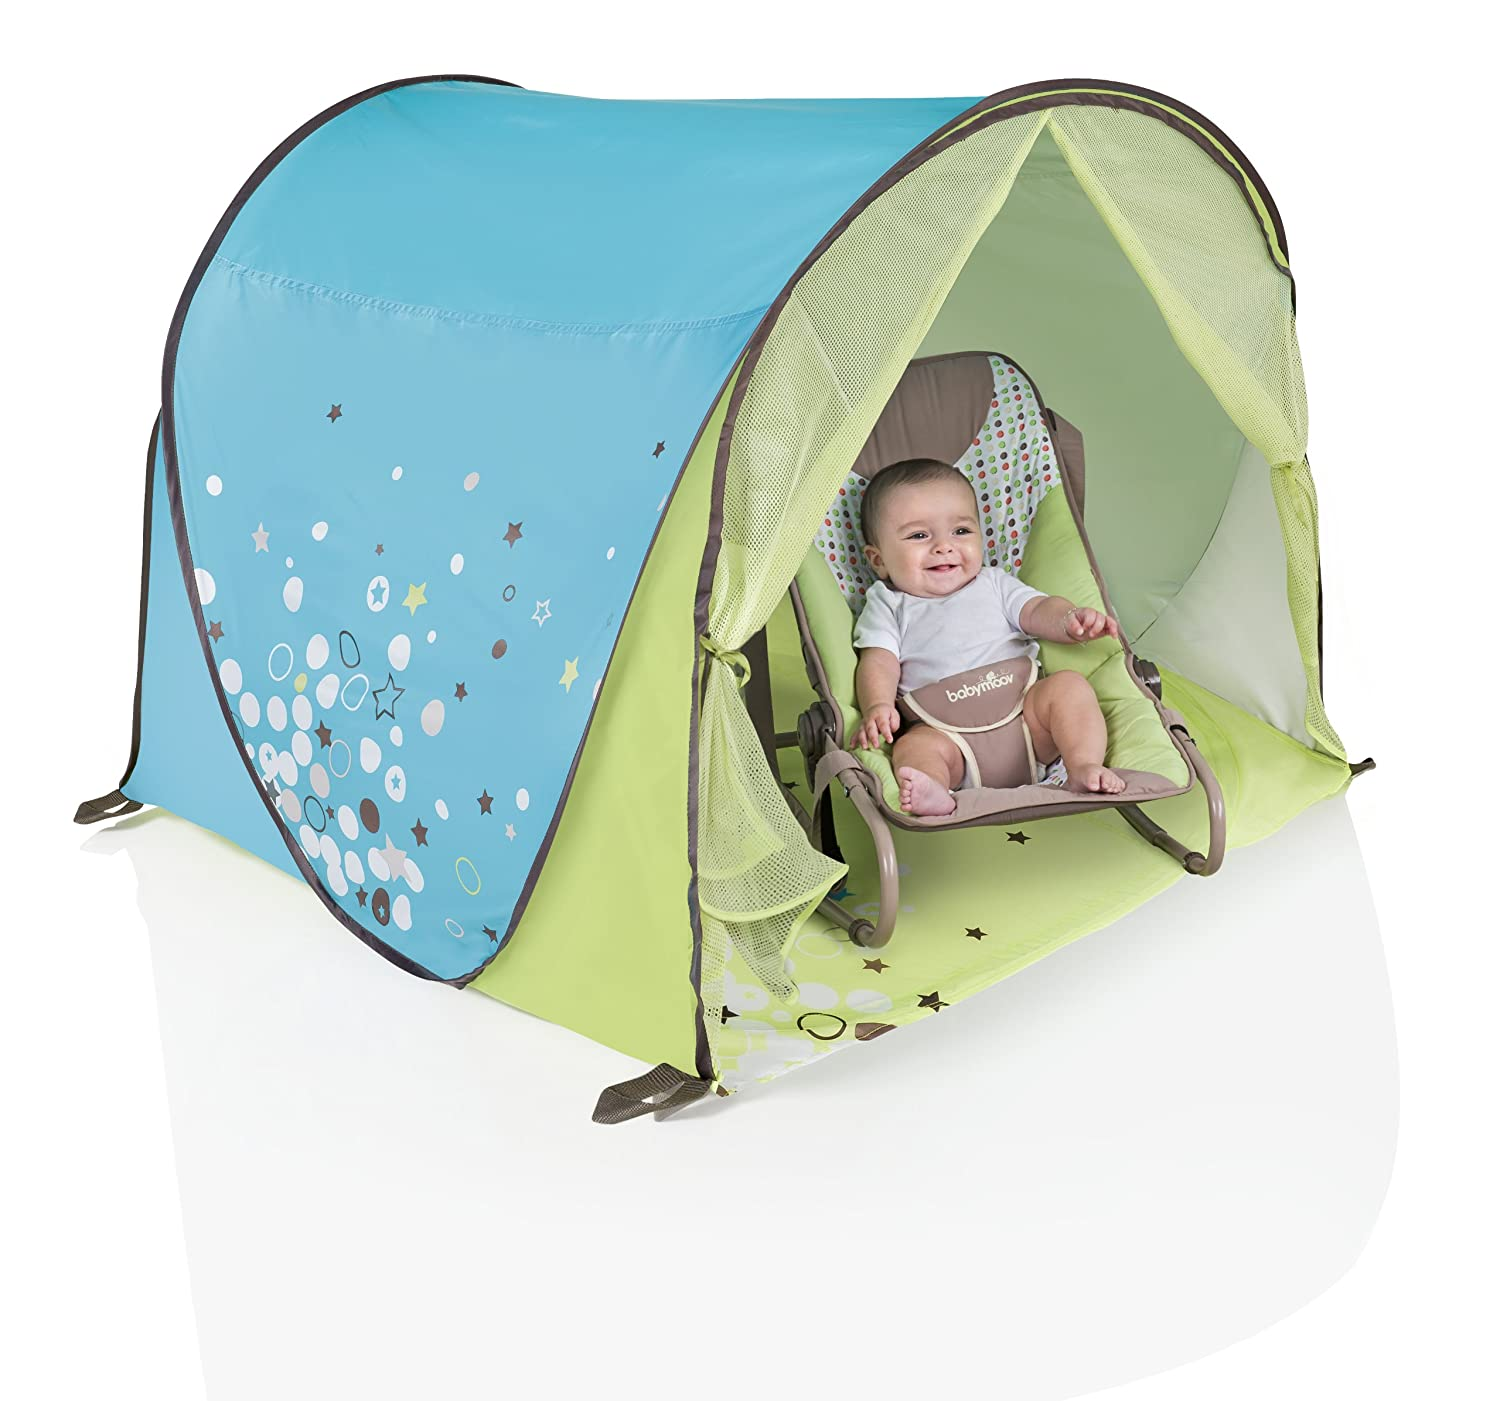 Amazon.com Babymoov Anti-UV Tent - UPF 50+ Sun Shelter for Toddlers and Children easily folds into a Carrying Bag for Outdoors u0026 Beach Baby  sc 1 st  Amazon.com : beach tent for baby uv protection - memphite.com